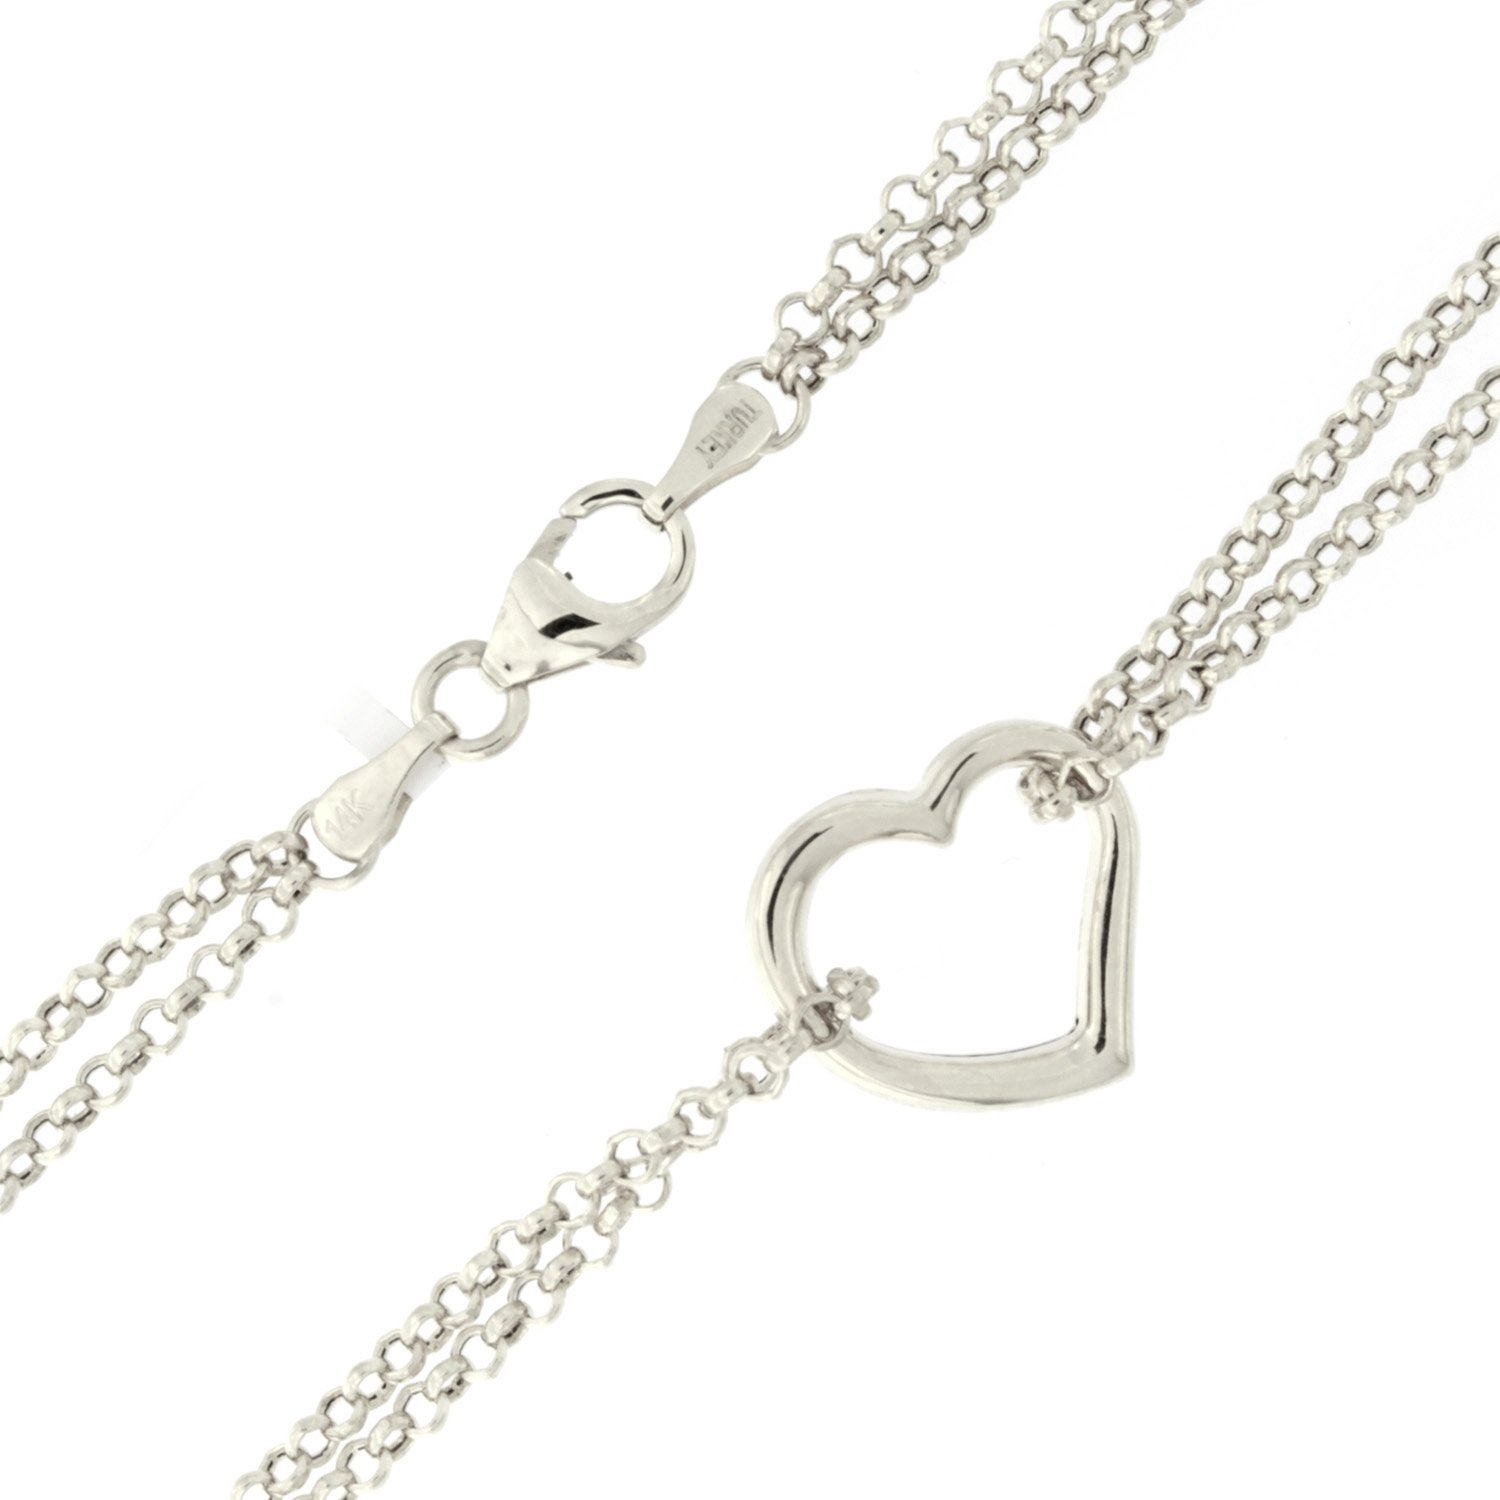 14k White Gold Double Chain Heart Anklet - 10''